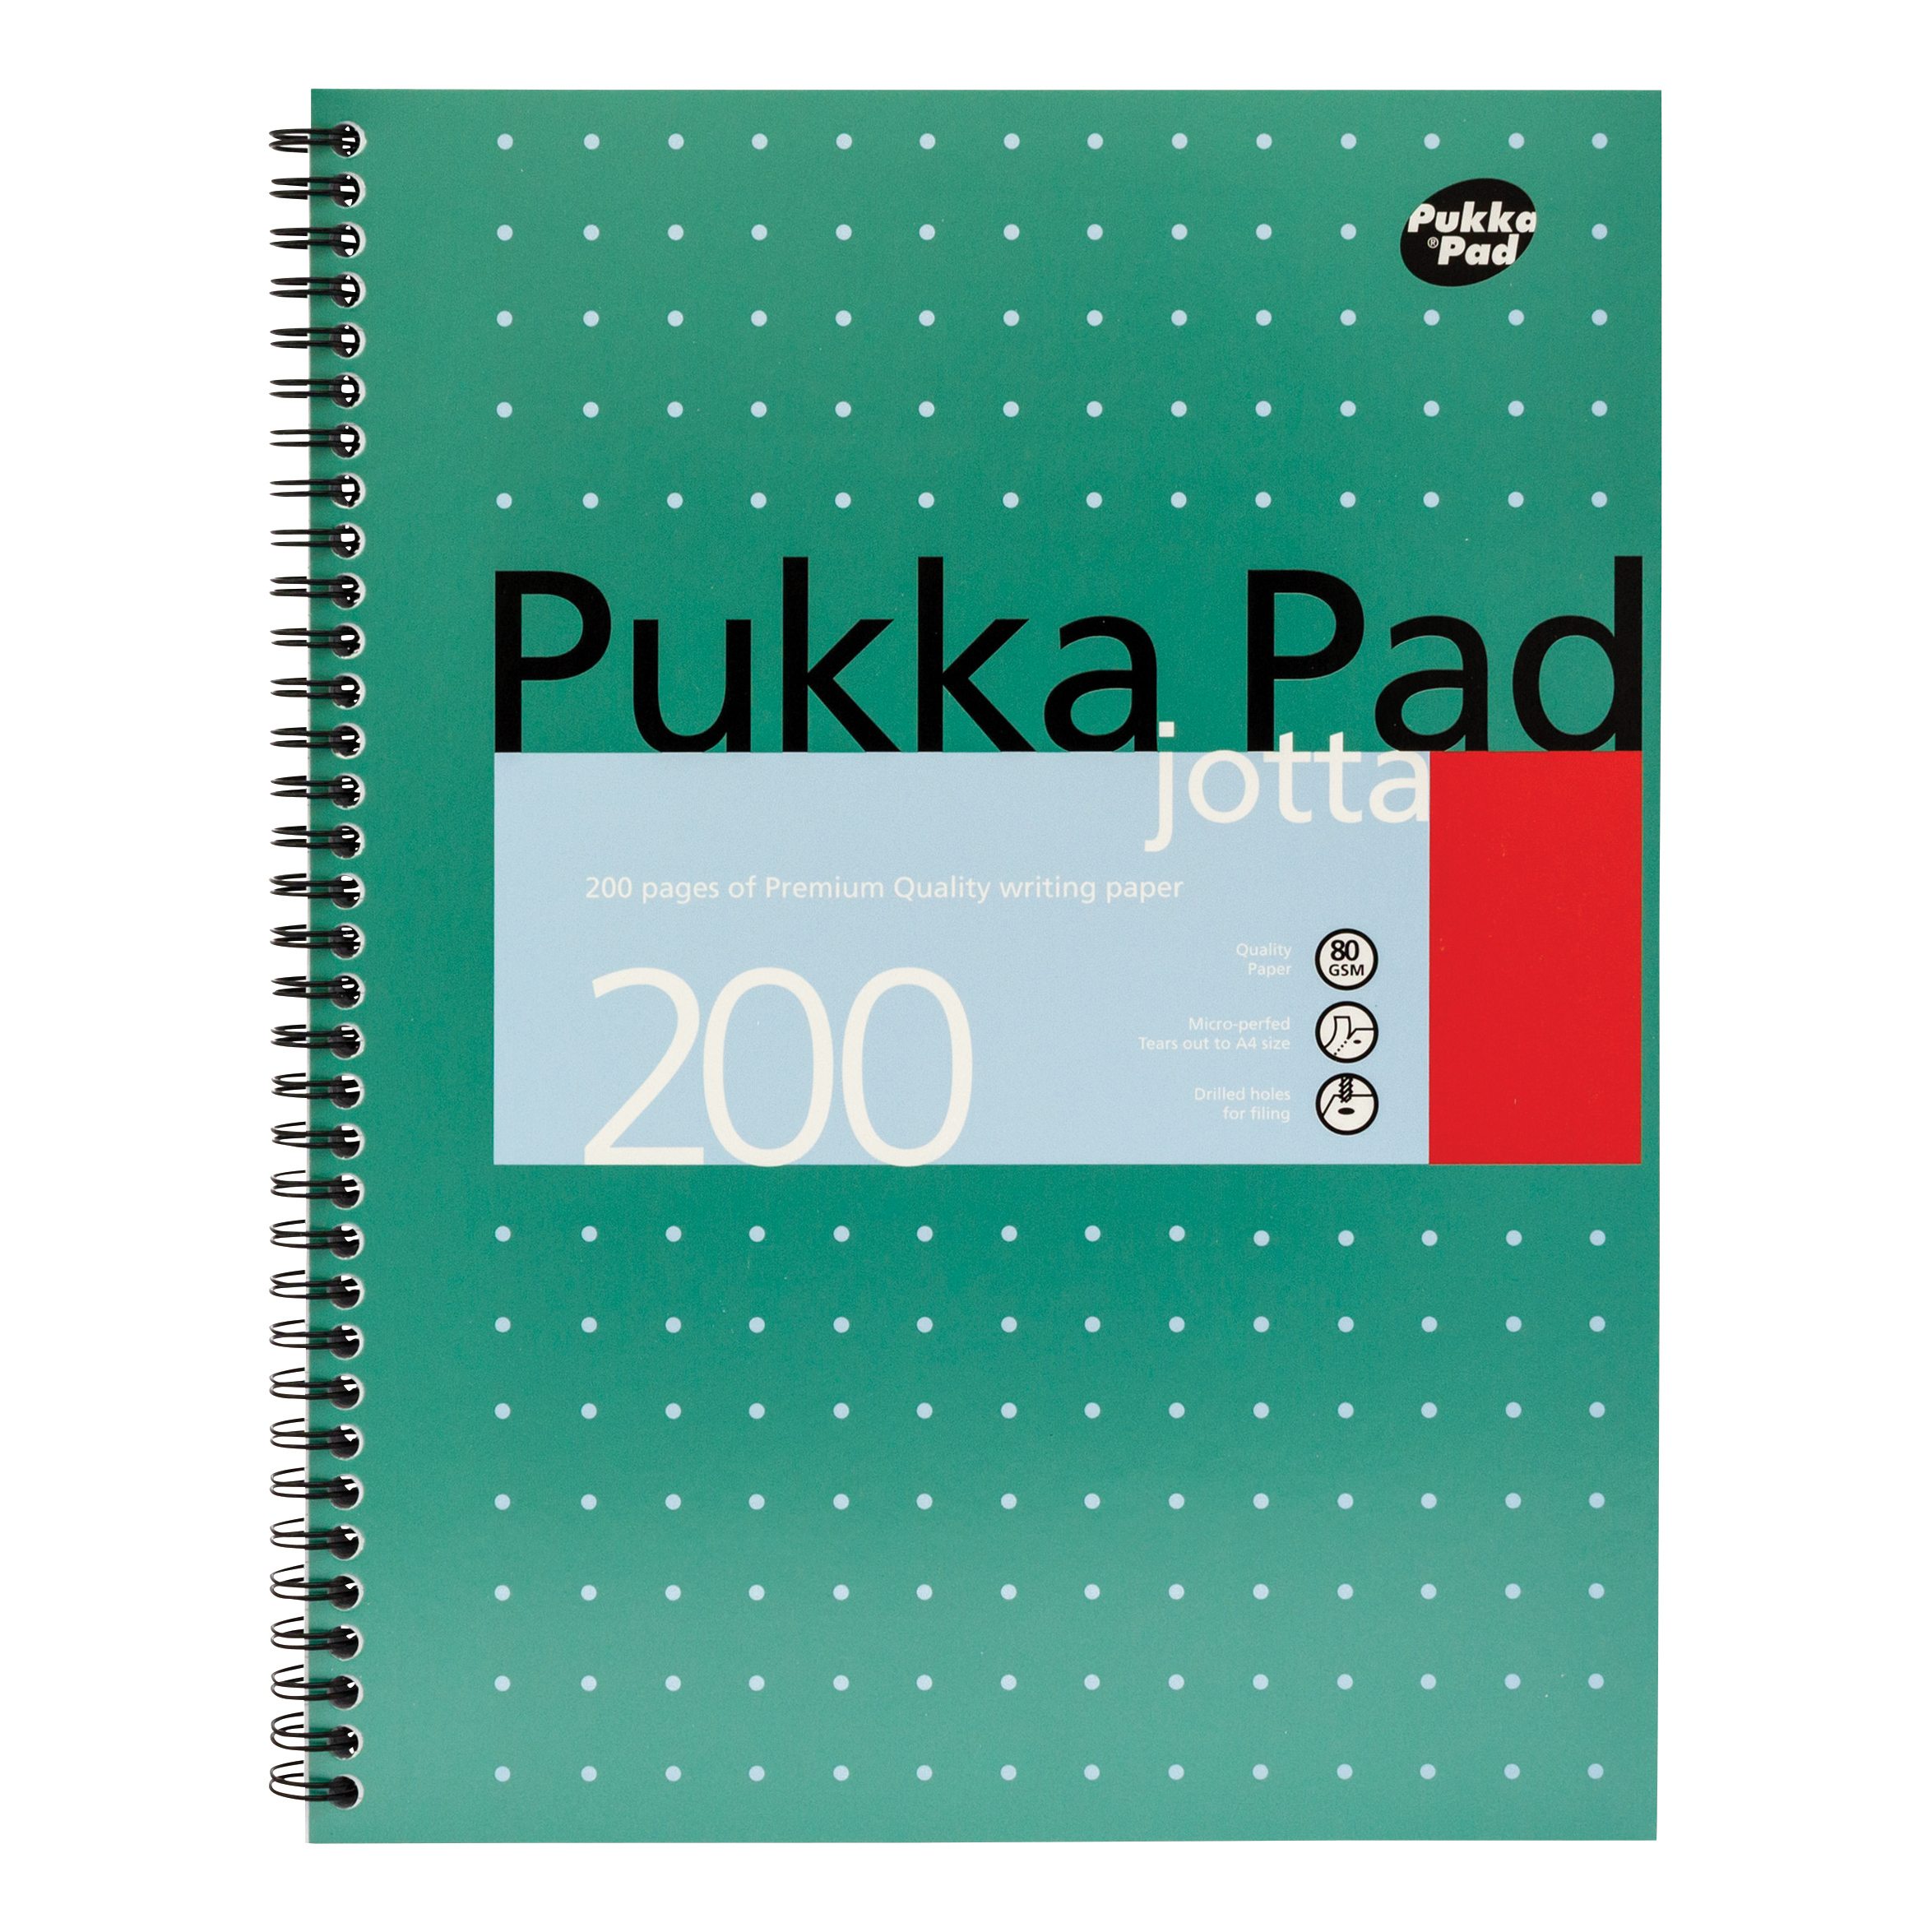 Pukka Pad Mettallic Jotta Nbk Wirebound 80gsm Ruled Margin Perf Punch 4 Hole 200pp A4+ Ref JM018 [Pack 3]